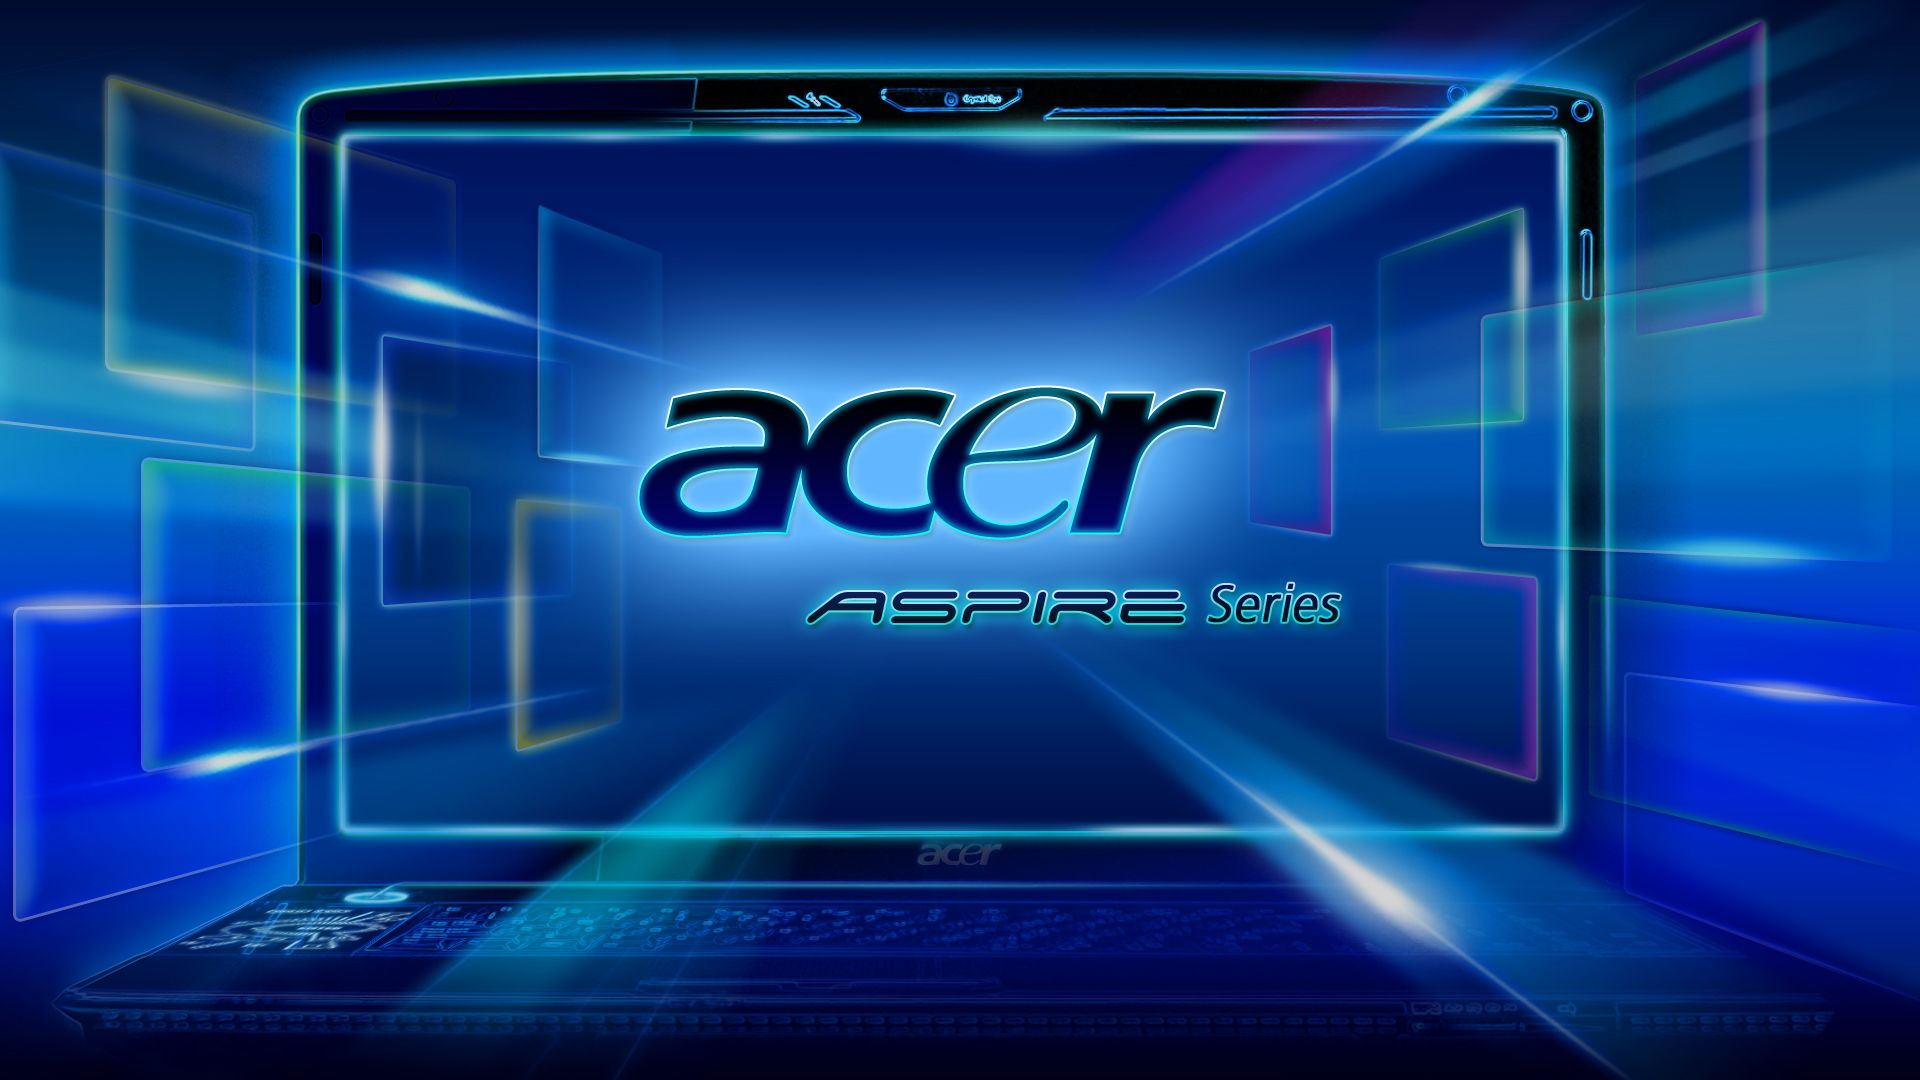 Acer good background